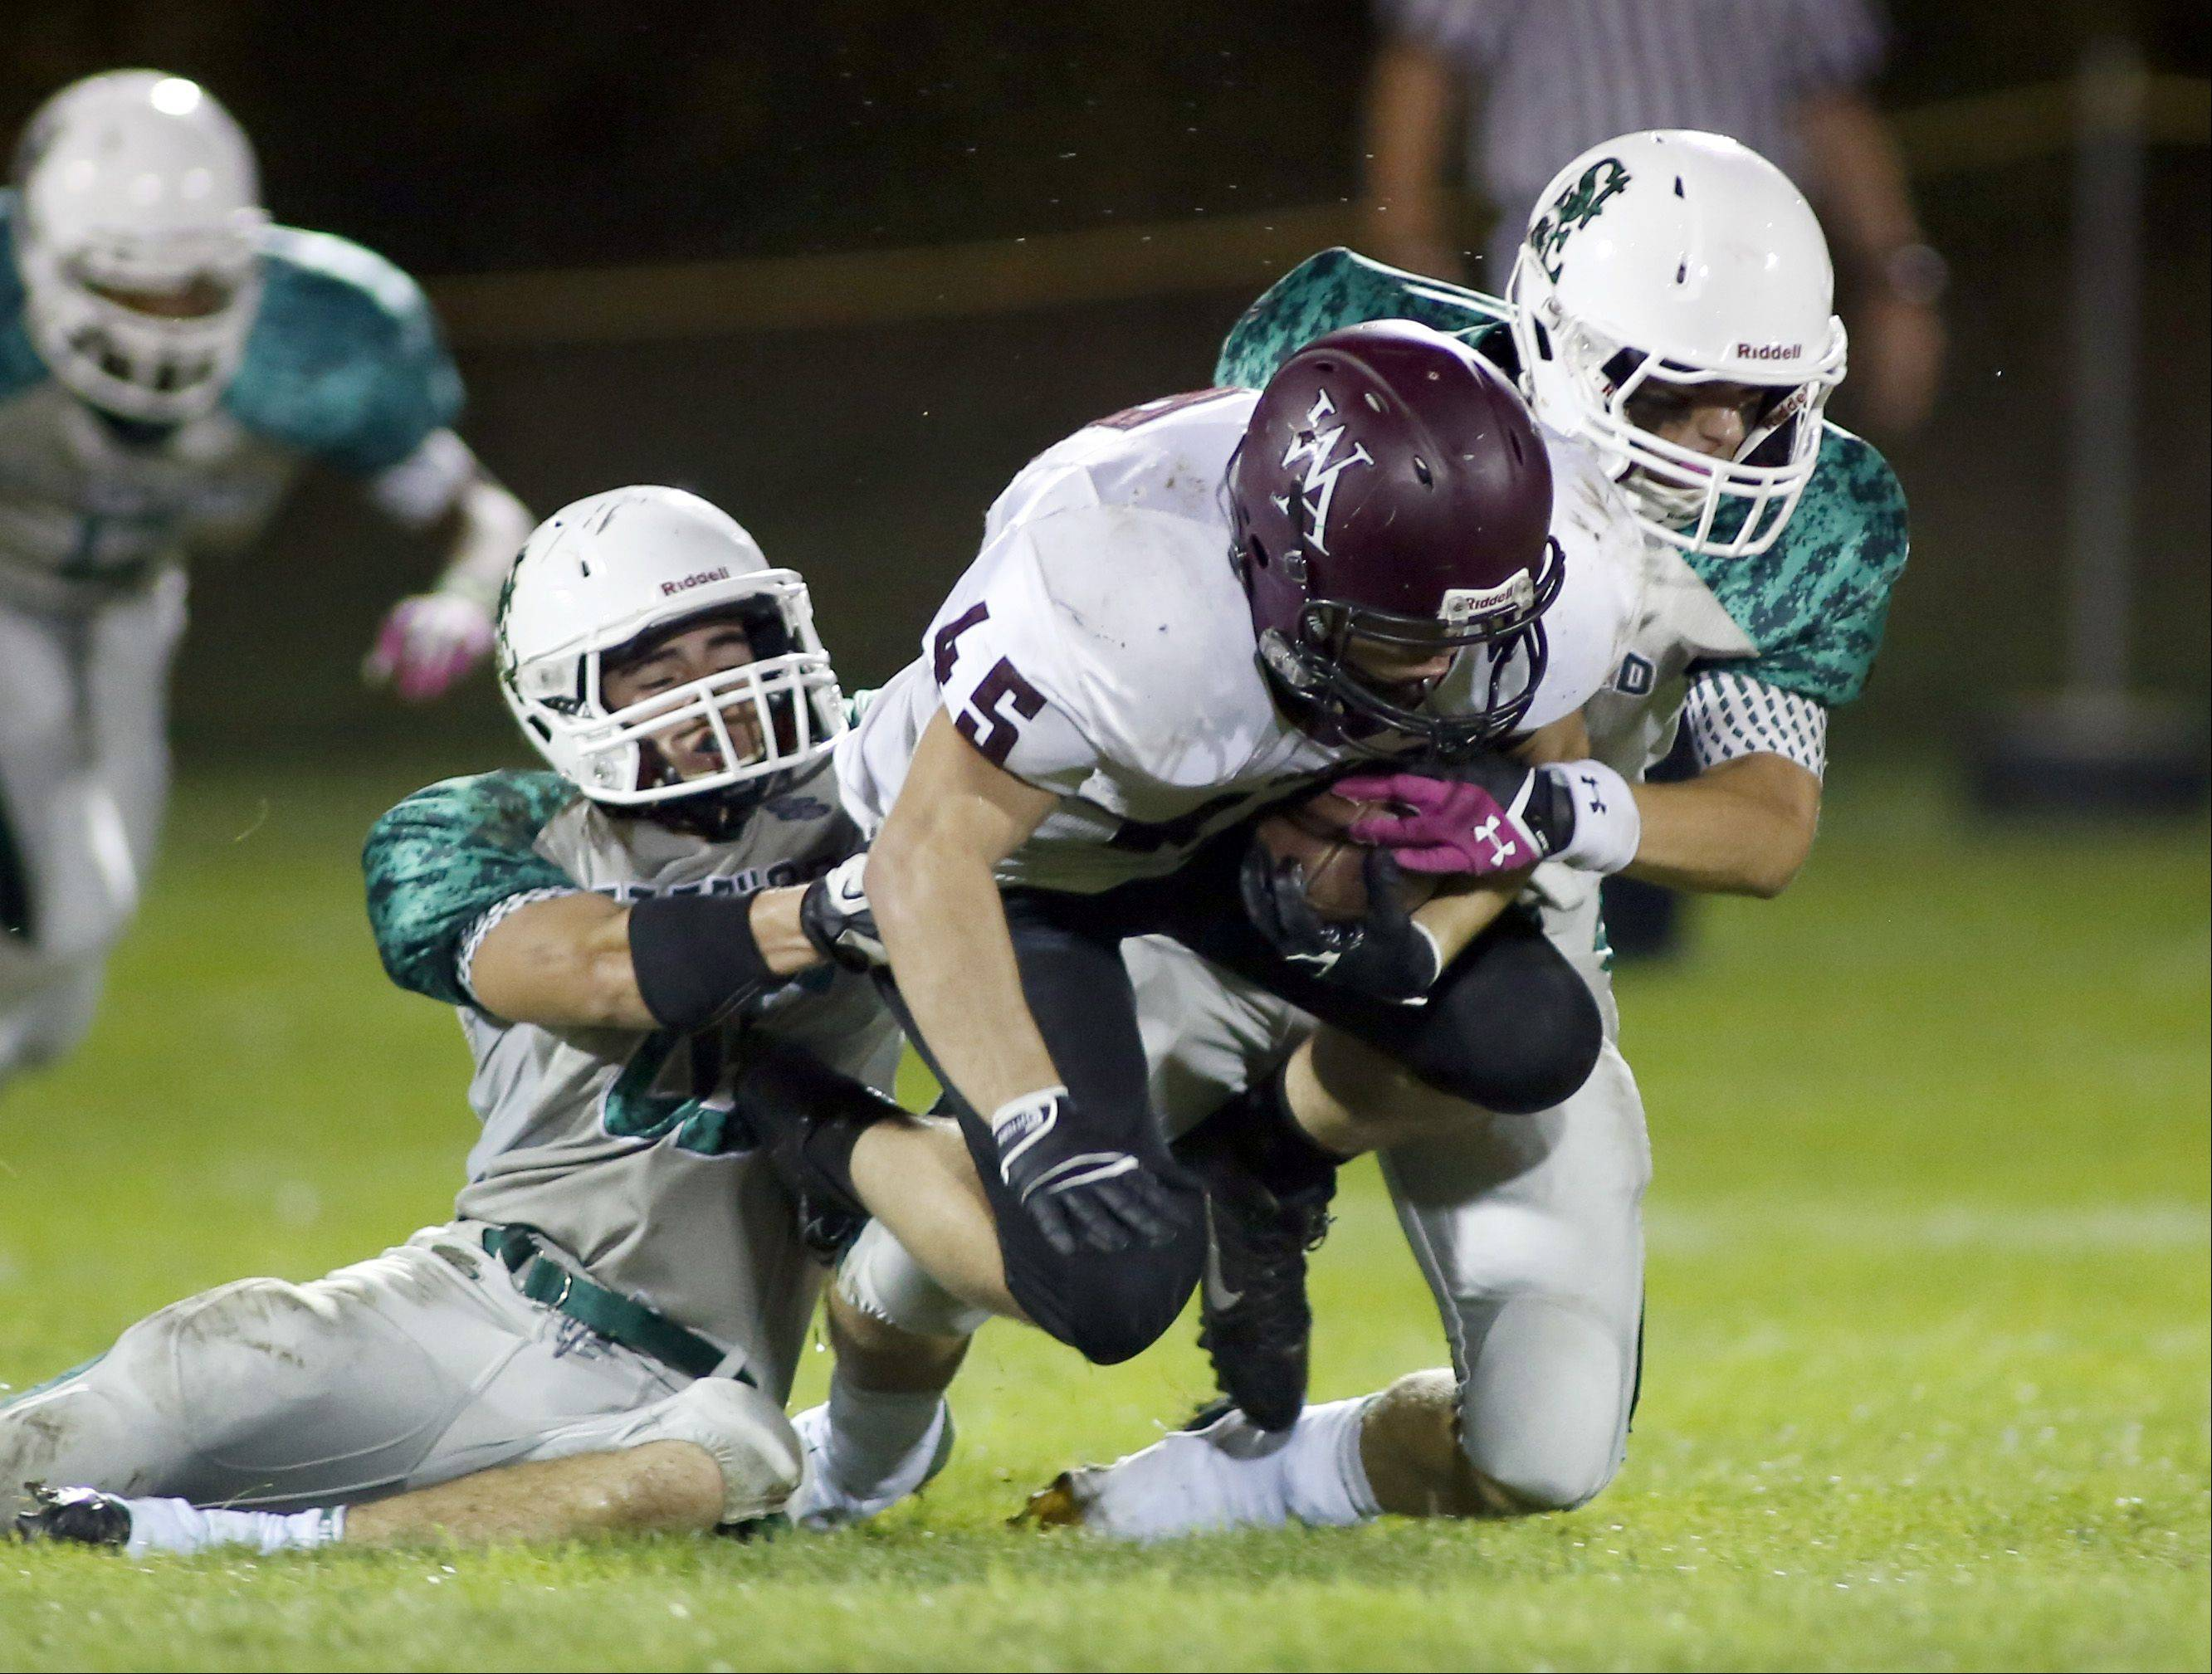 Wheaton Academy's John Gemmel fights for some extra yardage as St. Edward's William Bothwell, left, and Matthew Colasuono combine to make the tackle Friday night at Greg True Field in Elgin.